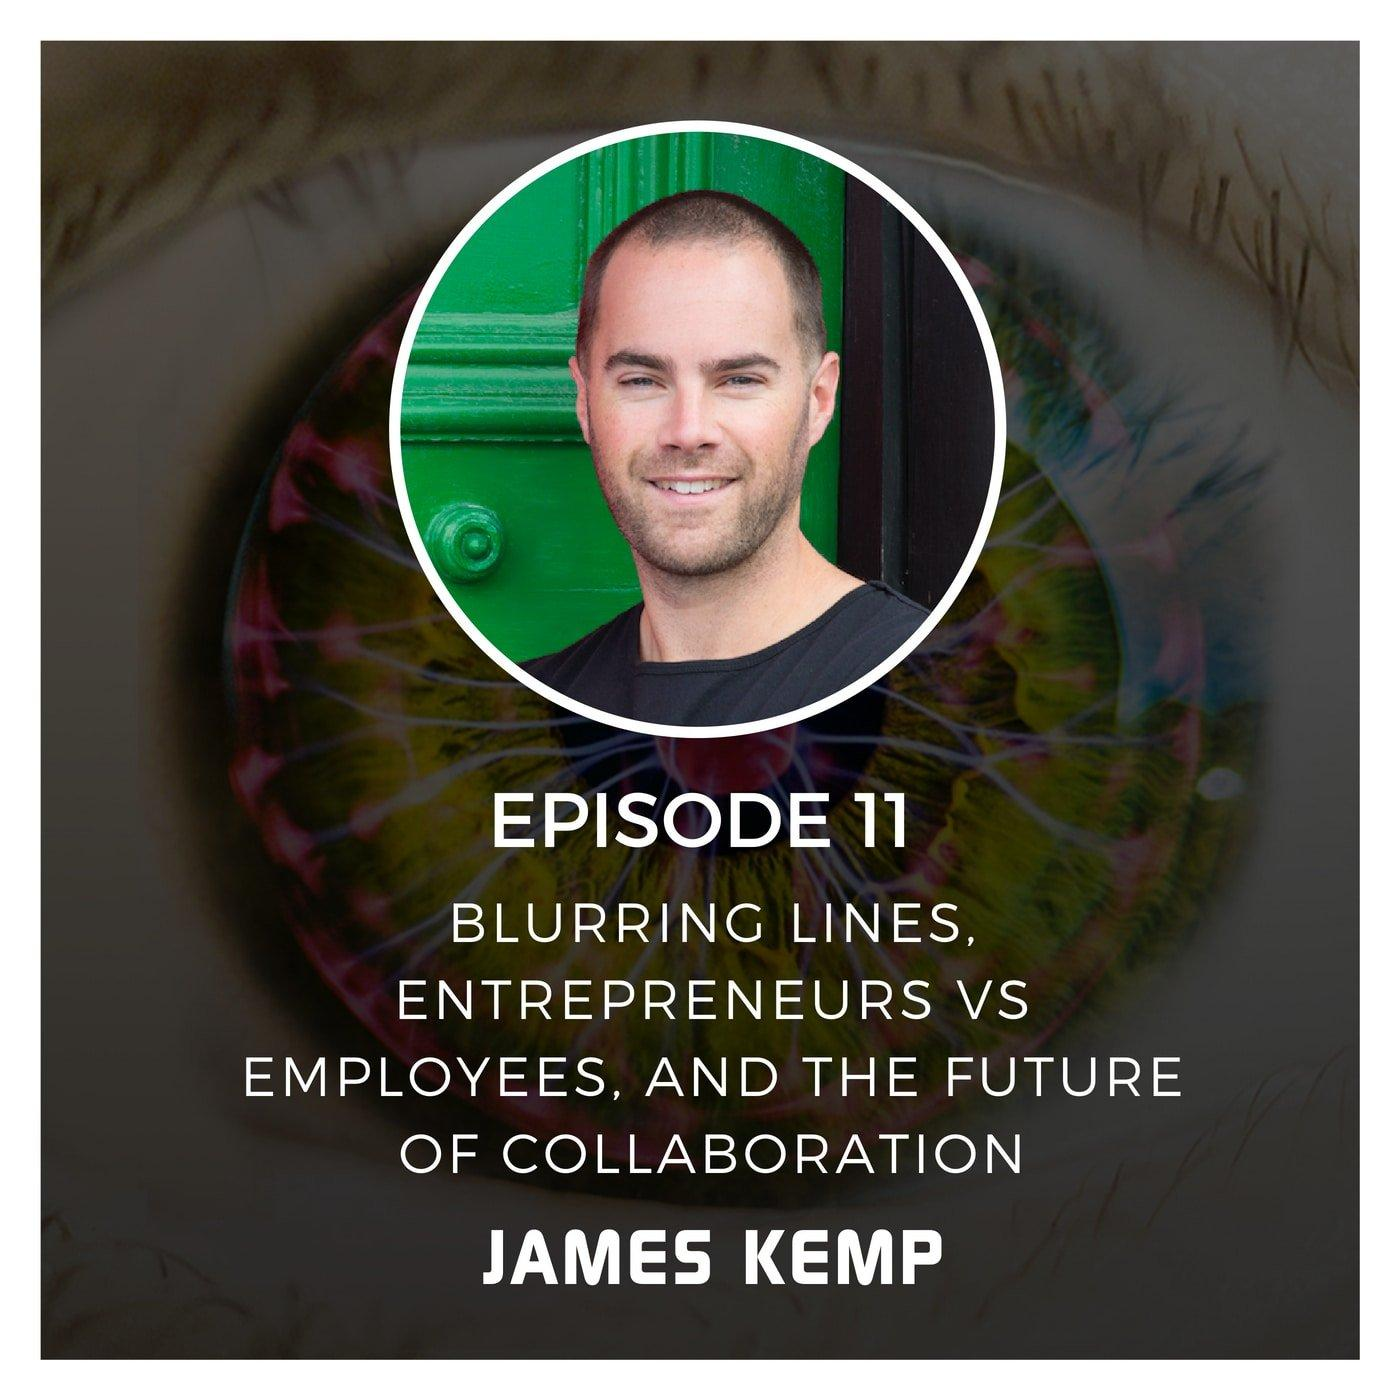 Blurring Lines, Entrepreneurs vs Employees, and the Future of Collaboration with James Kemp - Episode 11